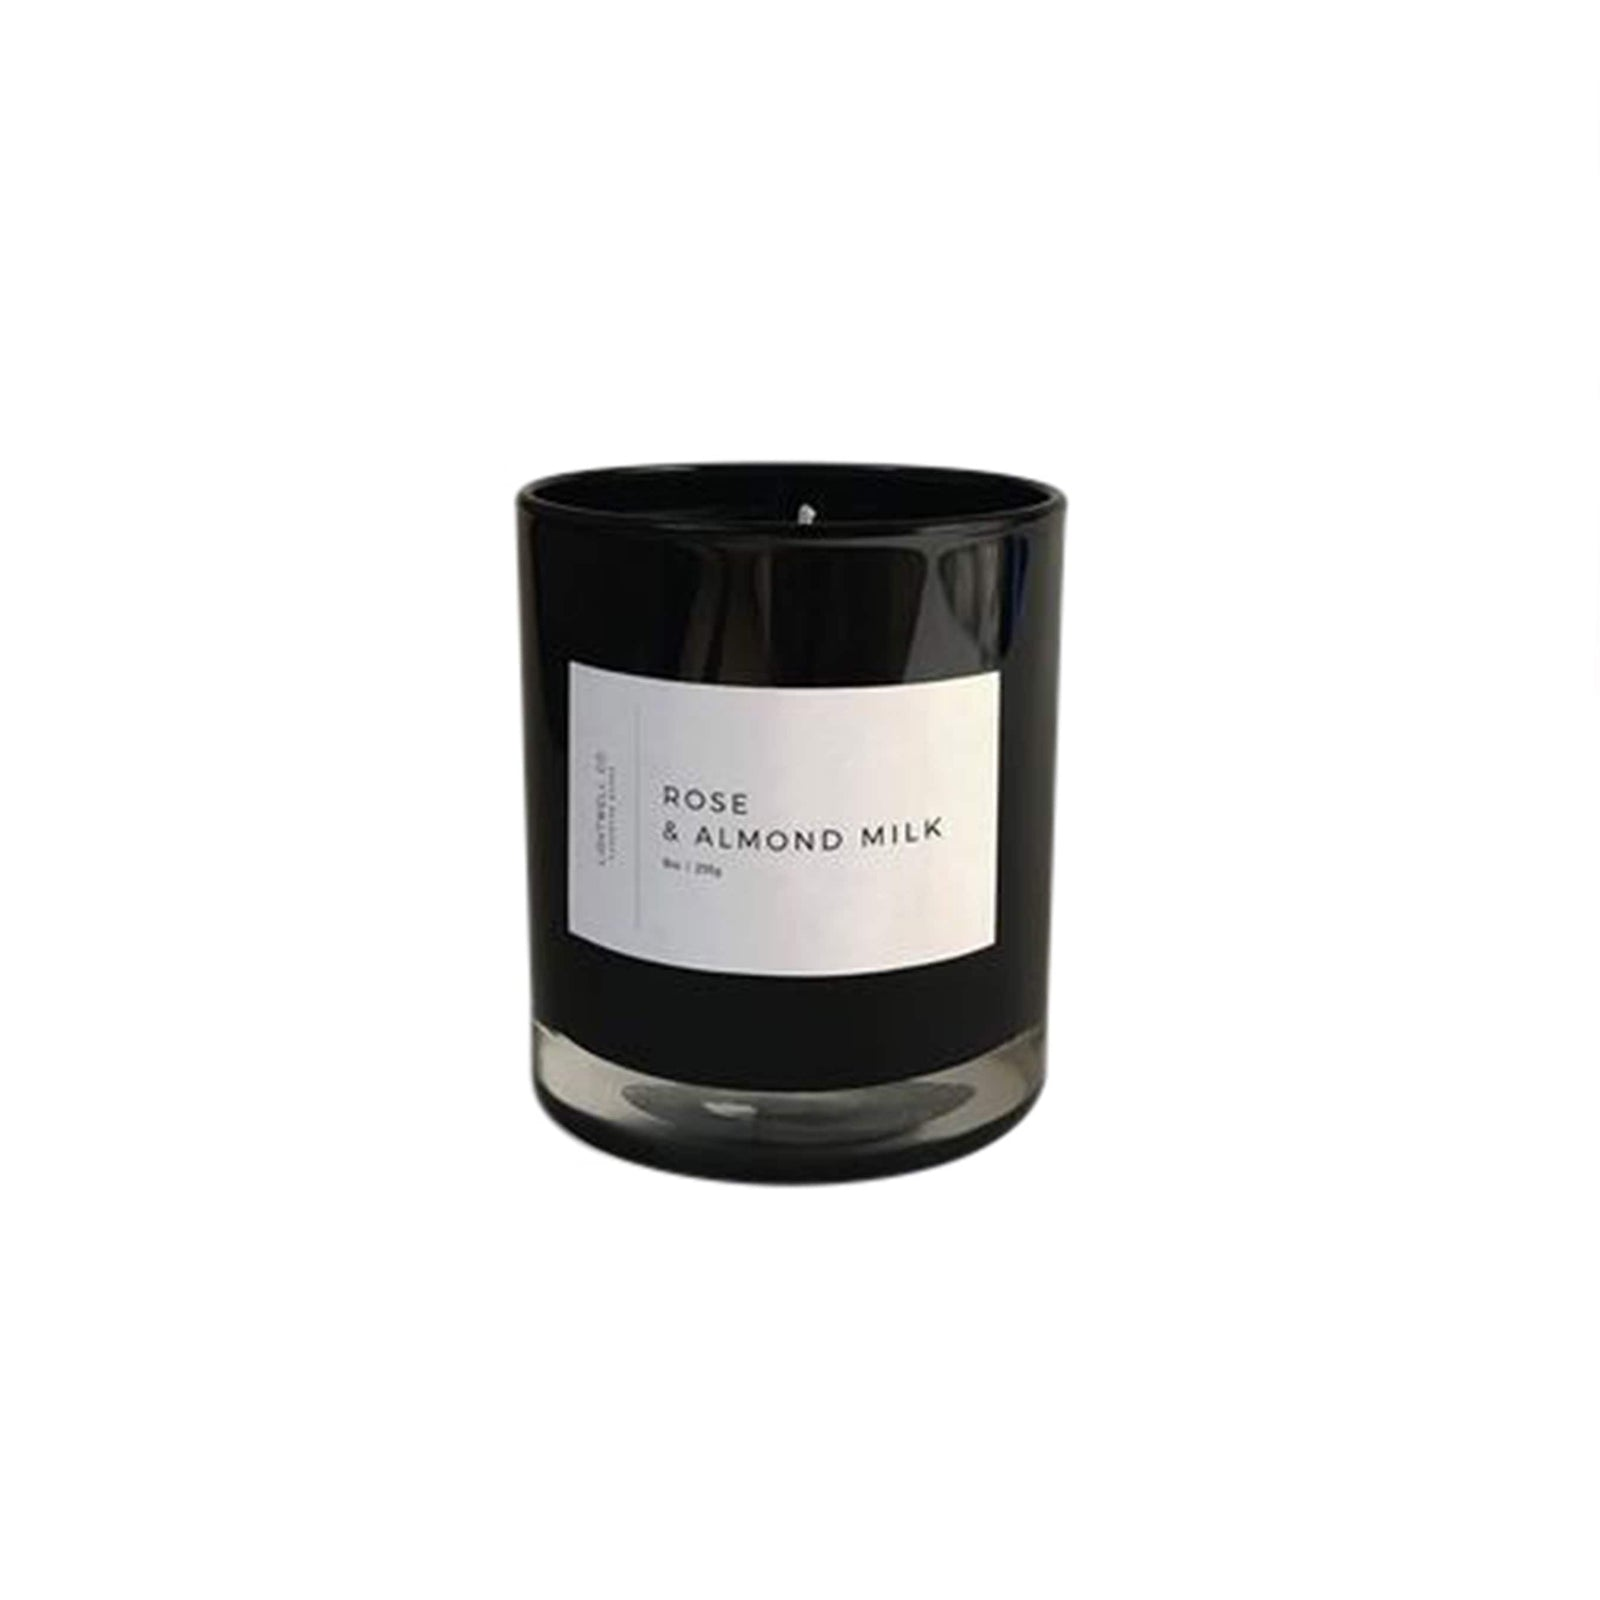 Lightwell Co. Candle Rose & Almond Milk Black Tumbler Candle